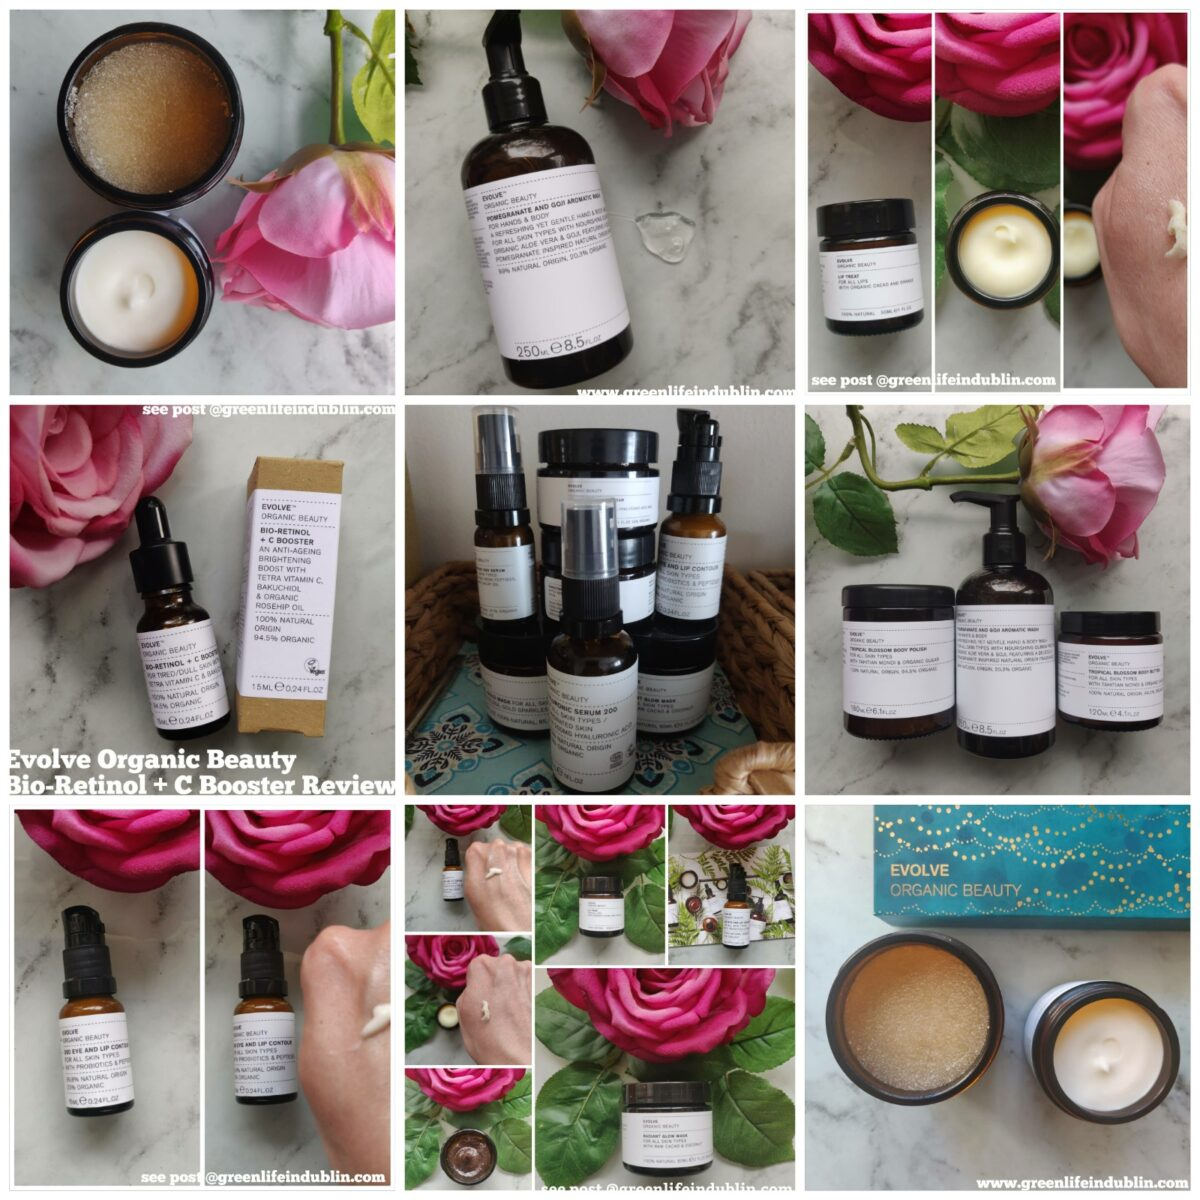 Brand overview – Evolve Organic Beauty – Green Life In Dublin